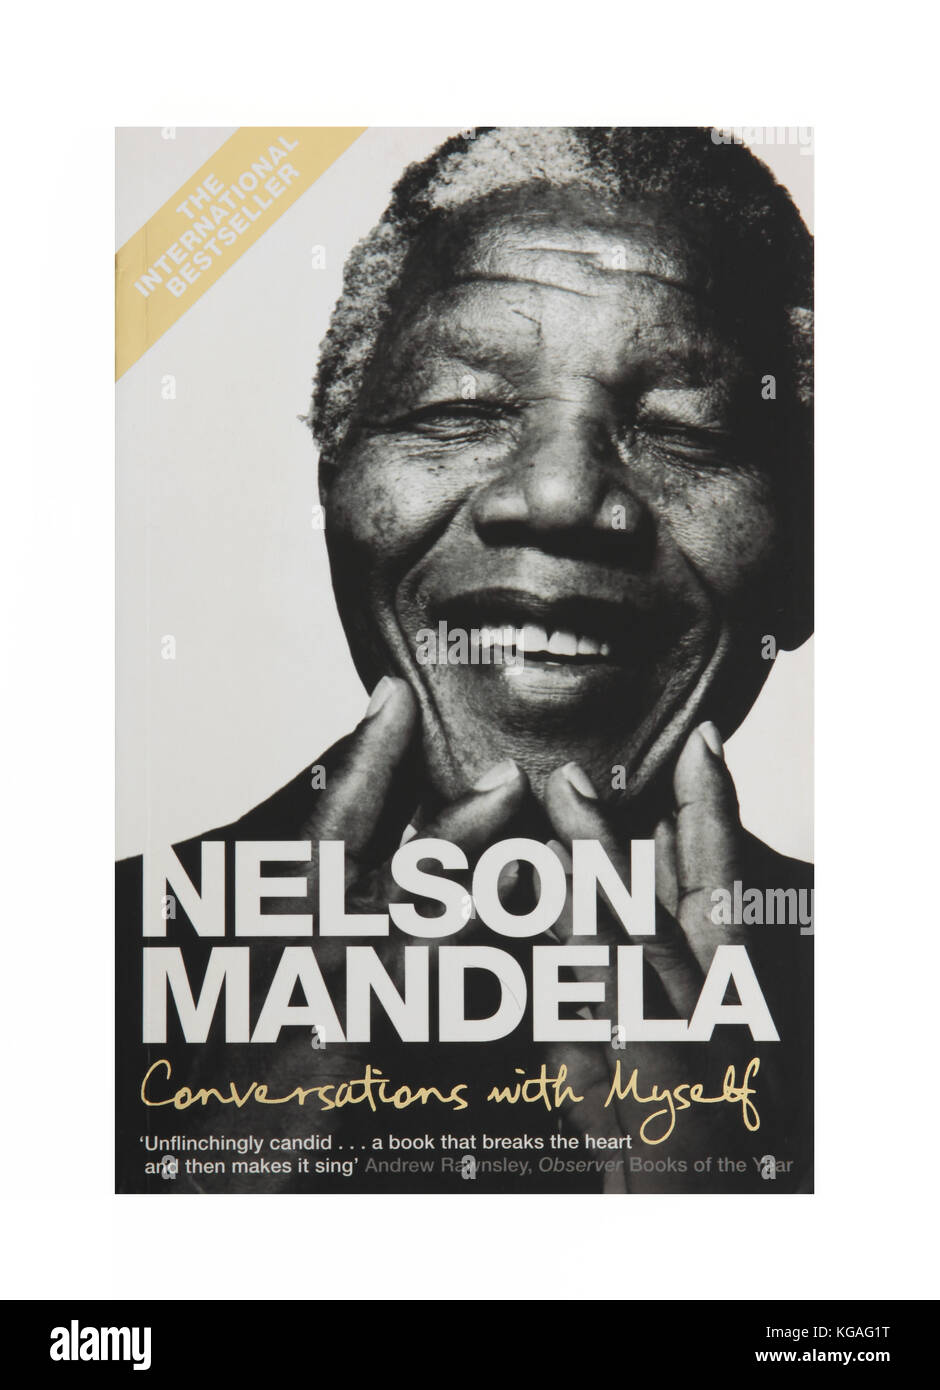 The book Nelson Mandela Conversations with Myself - Stock Image